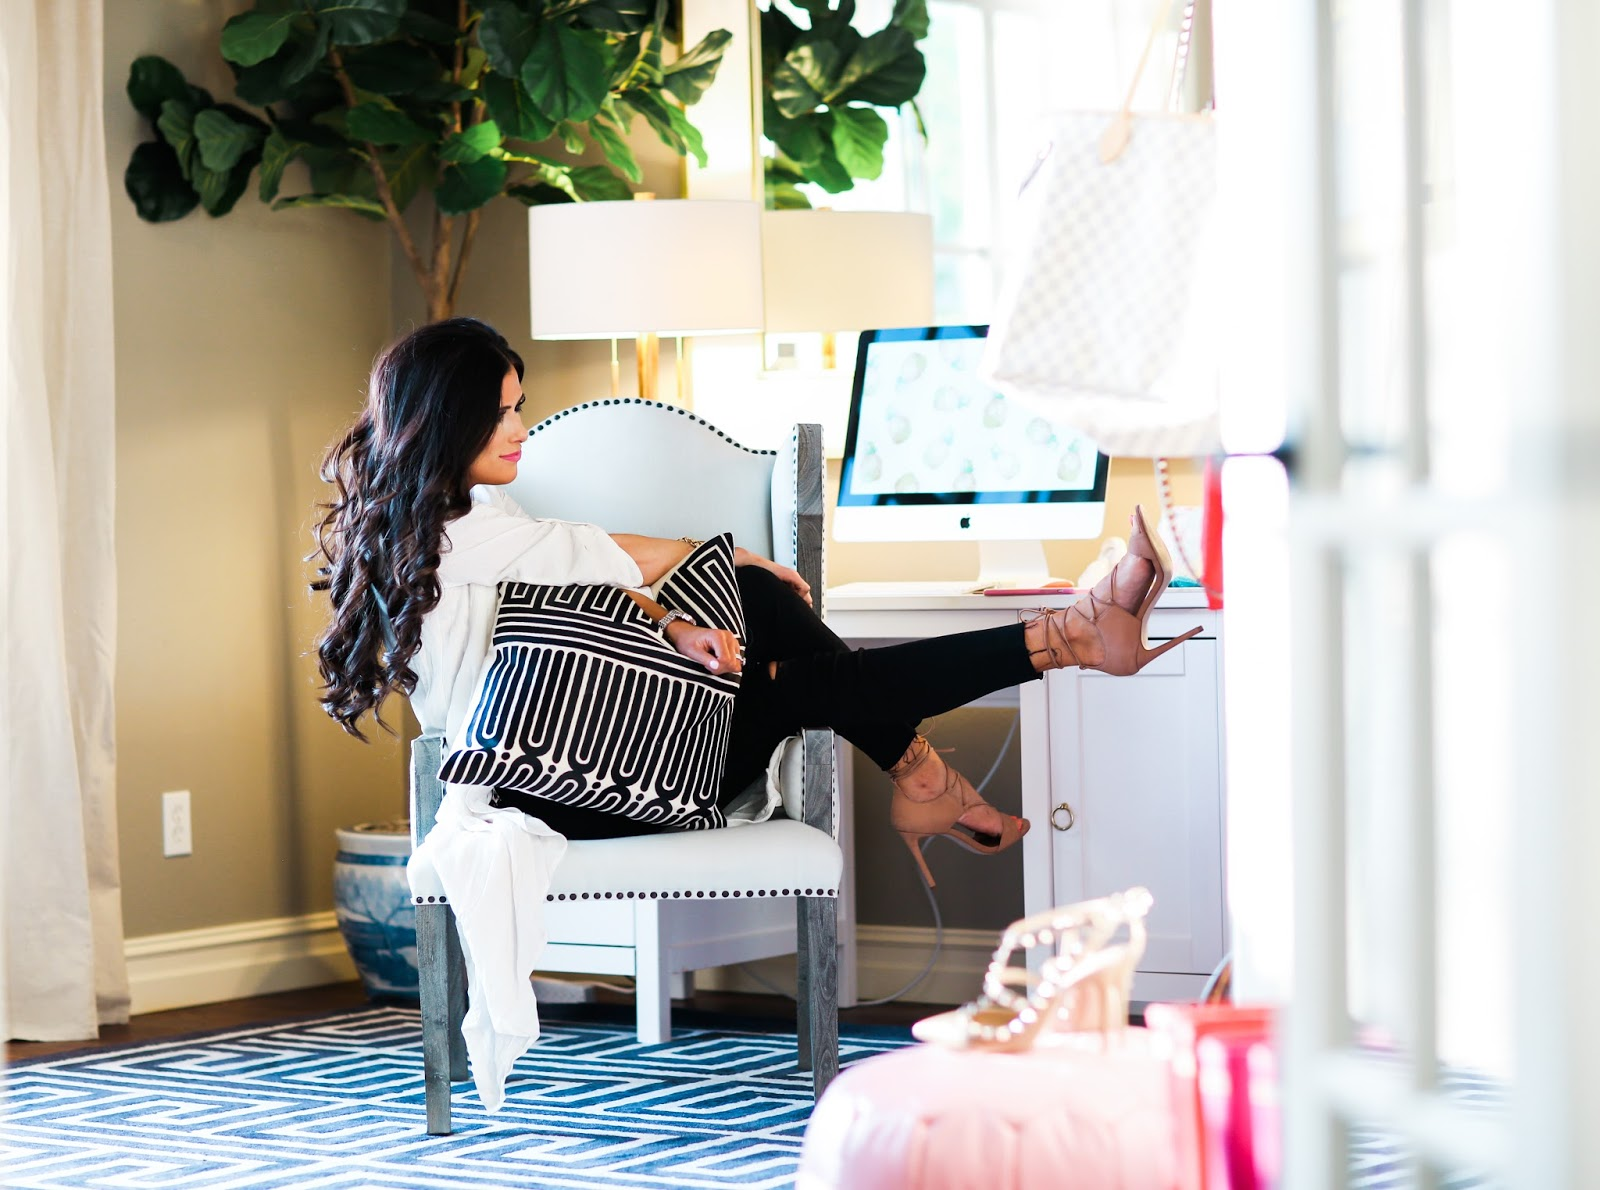 I Canu0027t Believe Iu0027m Finally Doing A Home Office Post! Weu0027ve Been Living In  Our New Home For Close To One Month Now U0026 Holy Cow! Decorating A Full House  Is ...